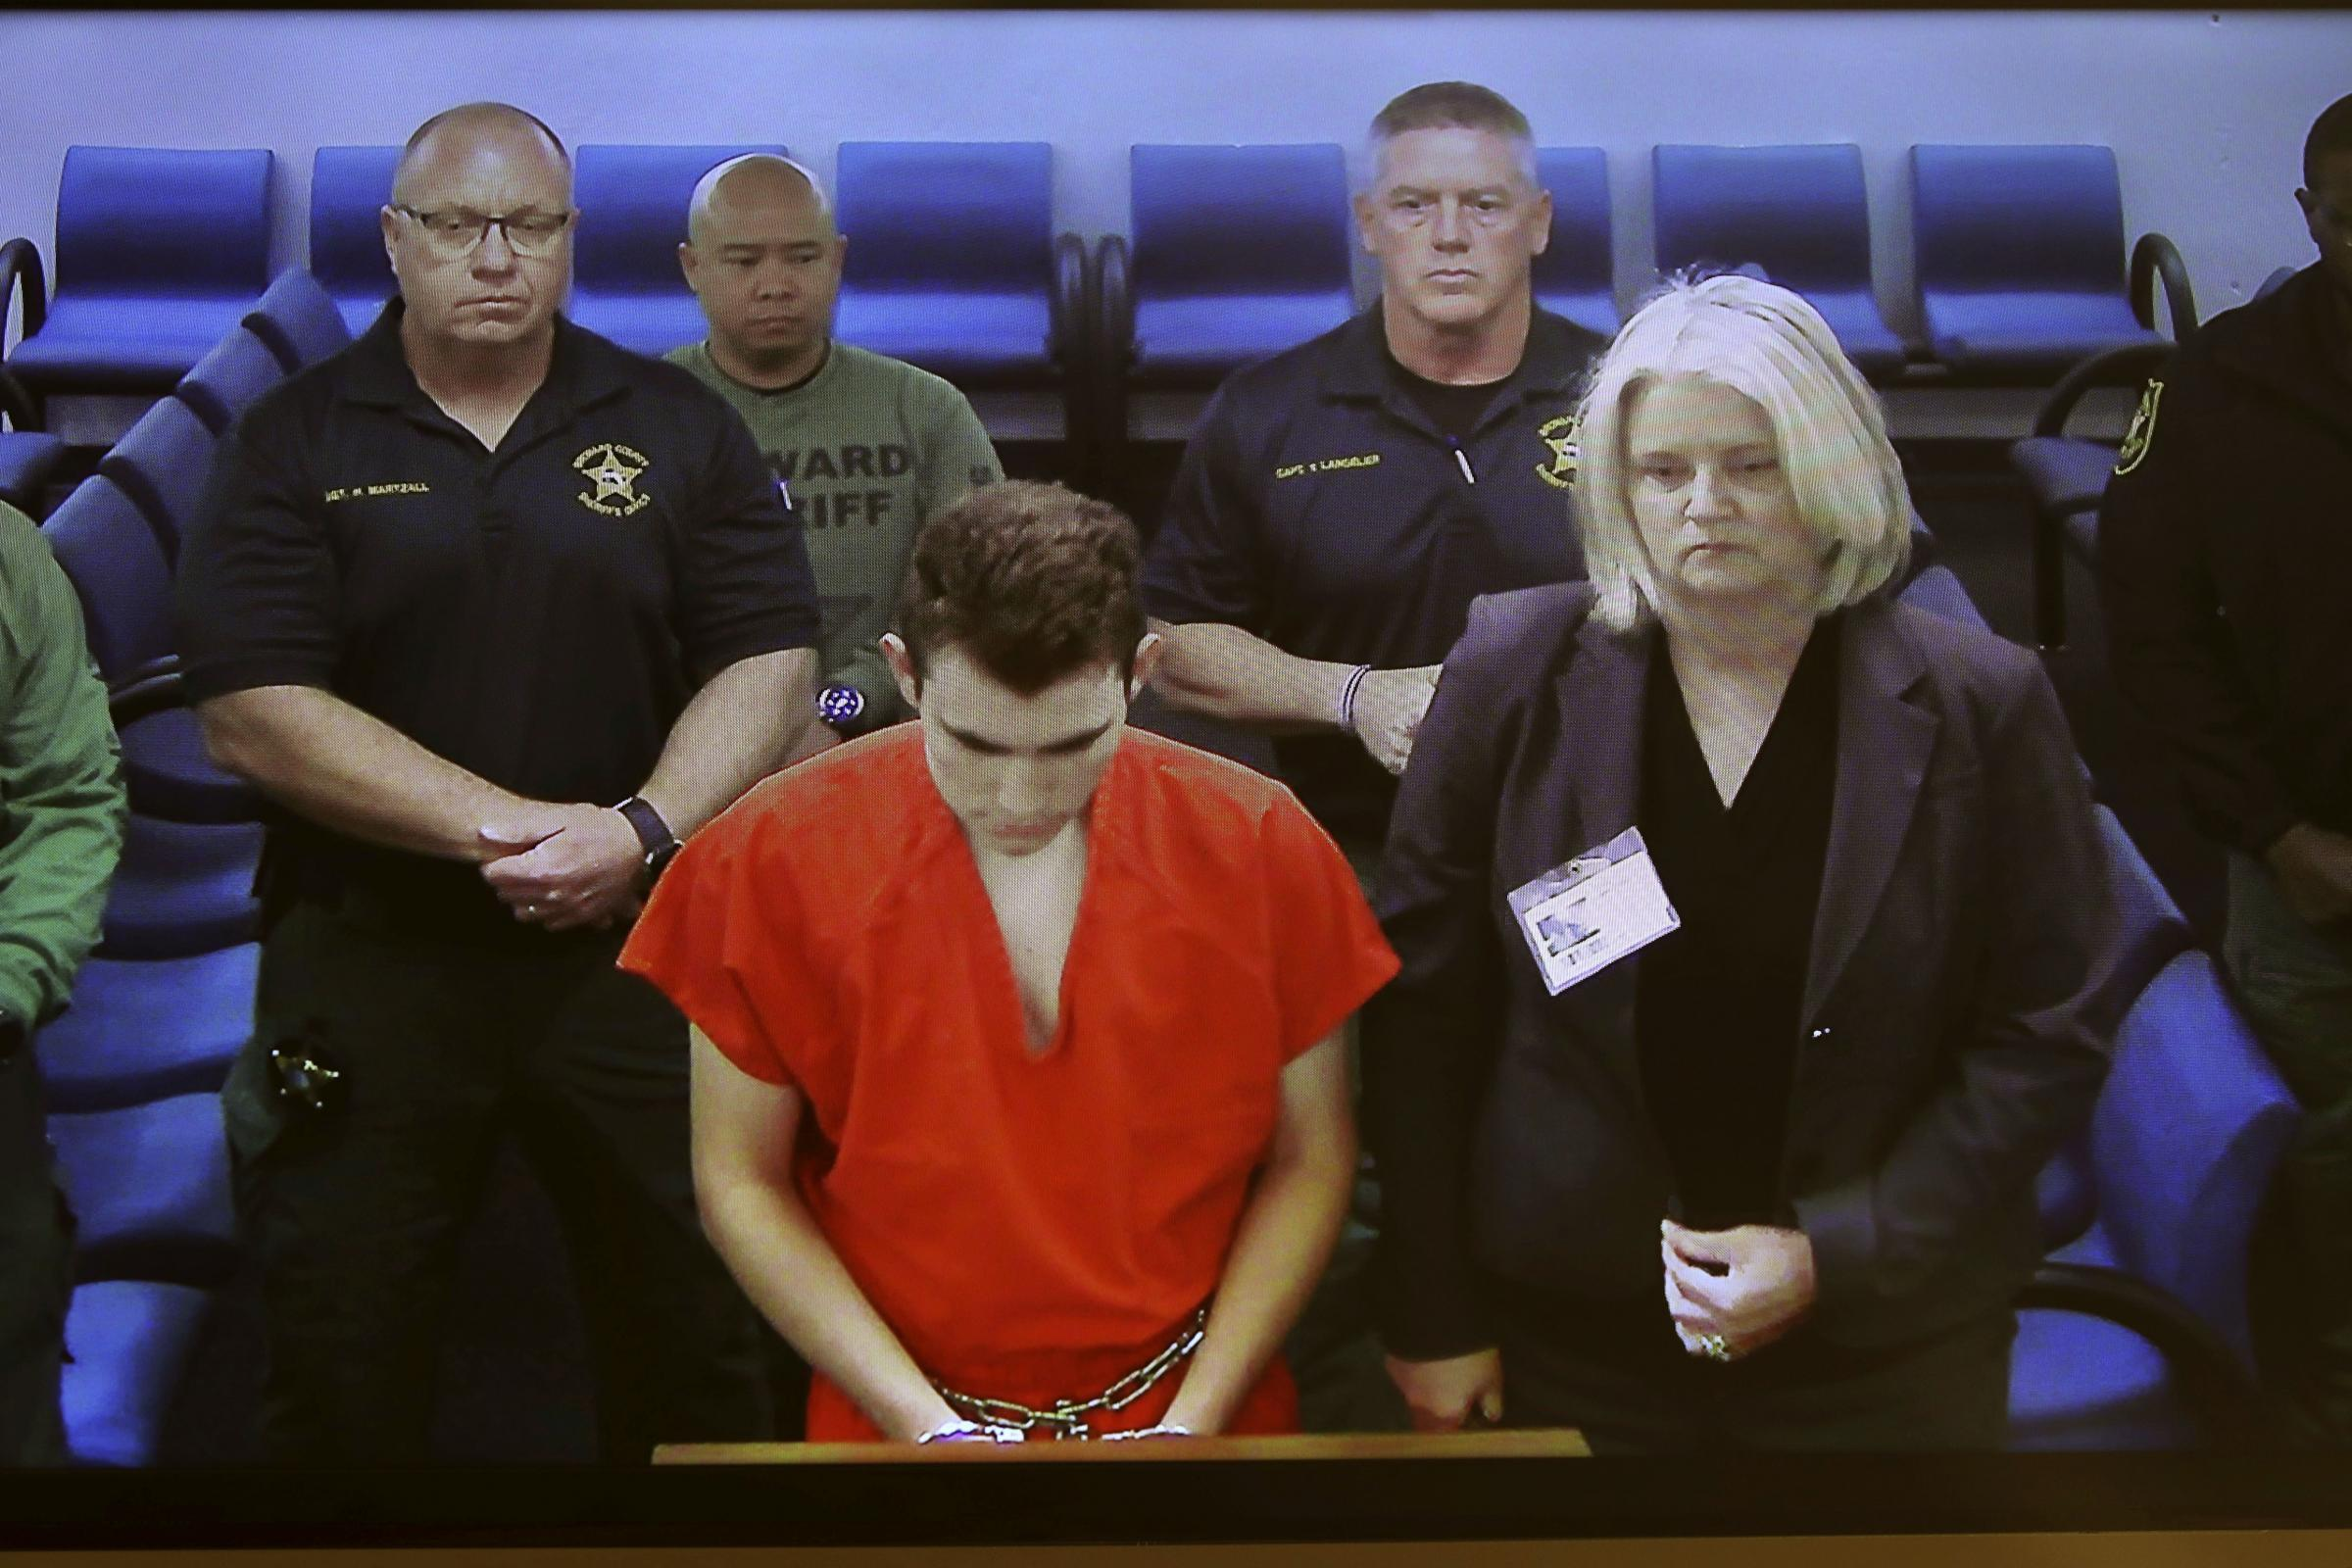 Nikolas Cruz in court via video conference from jail for his first appearance after the shooting (Broward County Court/South Florida Sun-Sentinel via AP)